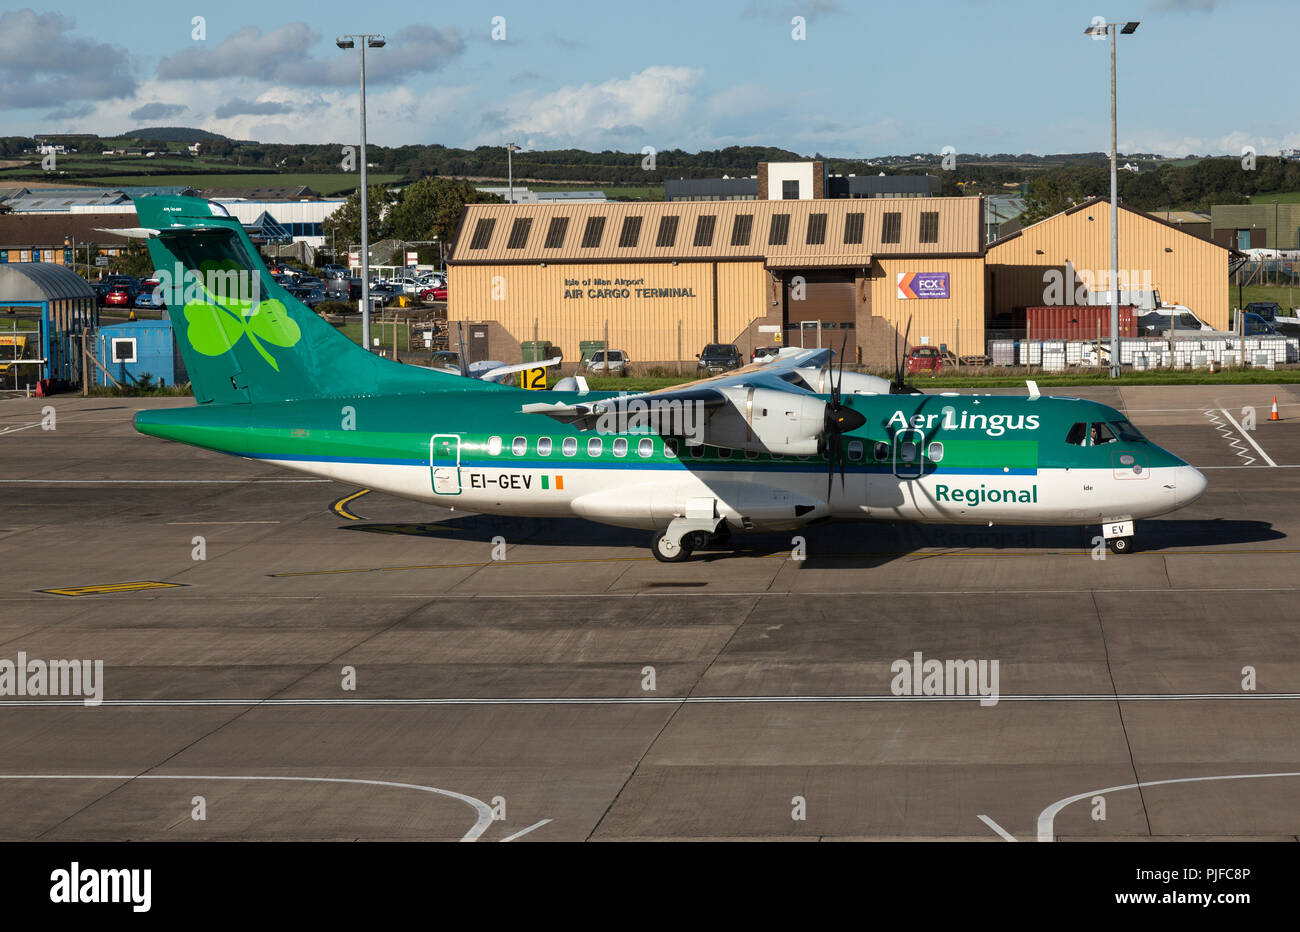 An Aer Lingus ATR-42 aeroplane, registered EI-GEV, taxying at Ronaldsway Airport on the Isle Of Man. - Stock Image